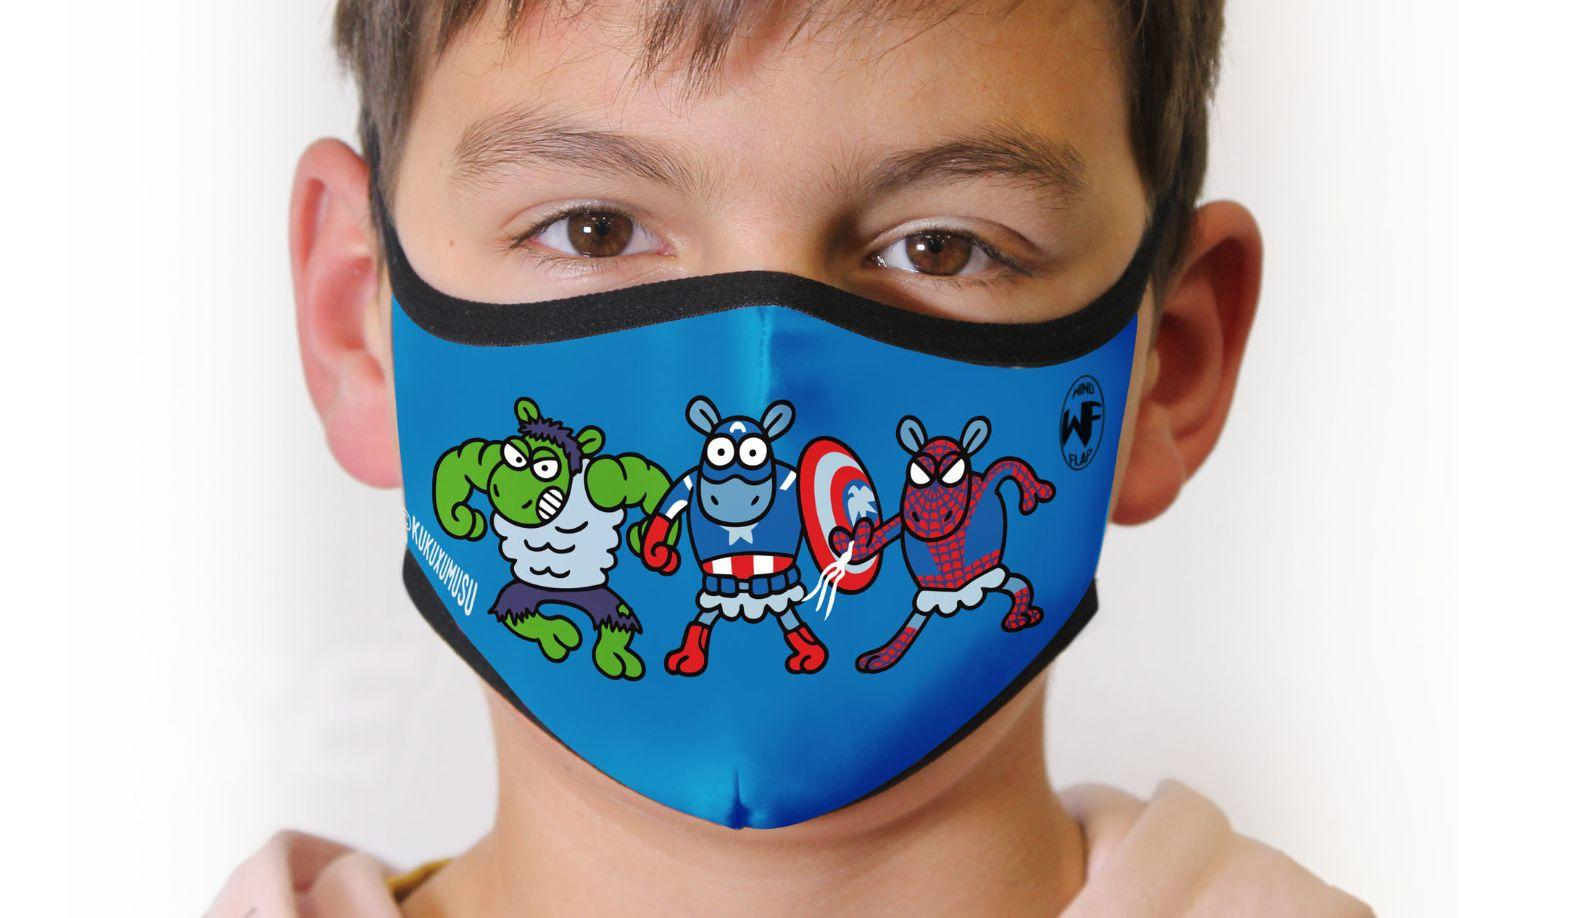 Inverse Windflap masks wear Kukuxumusu